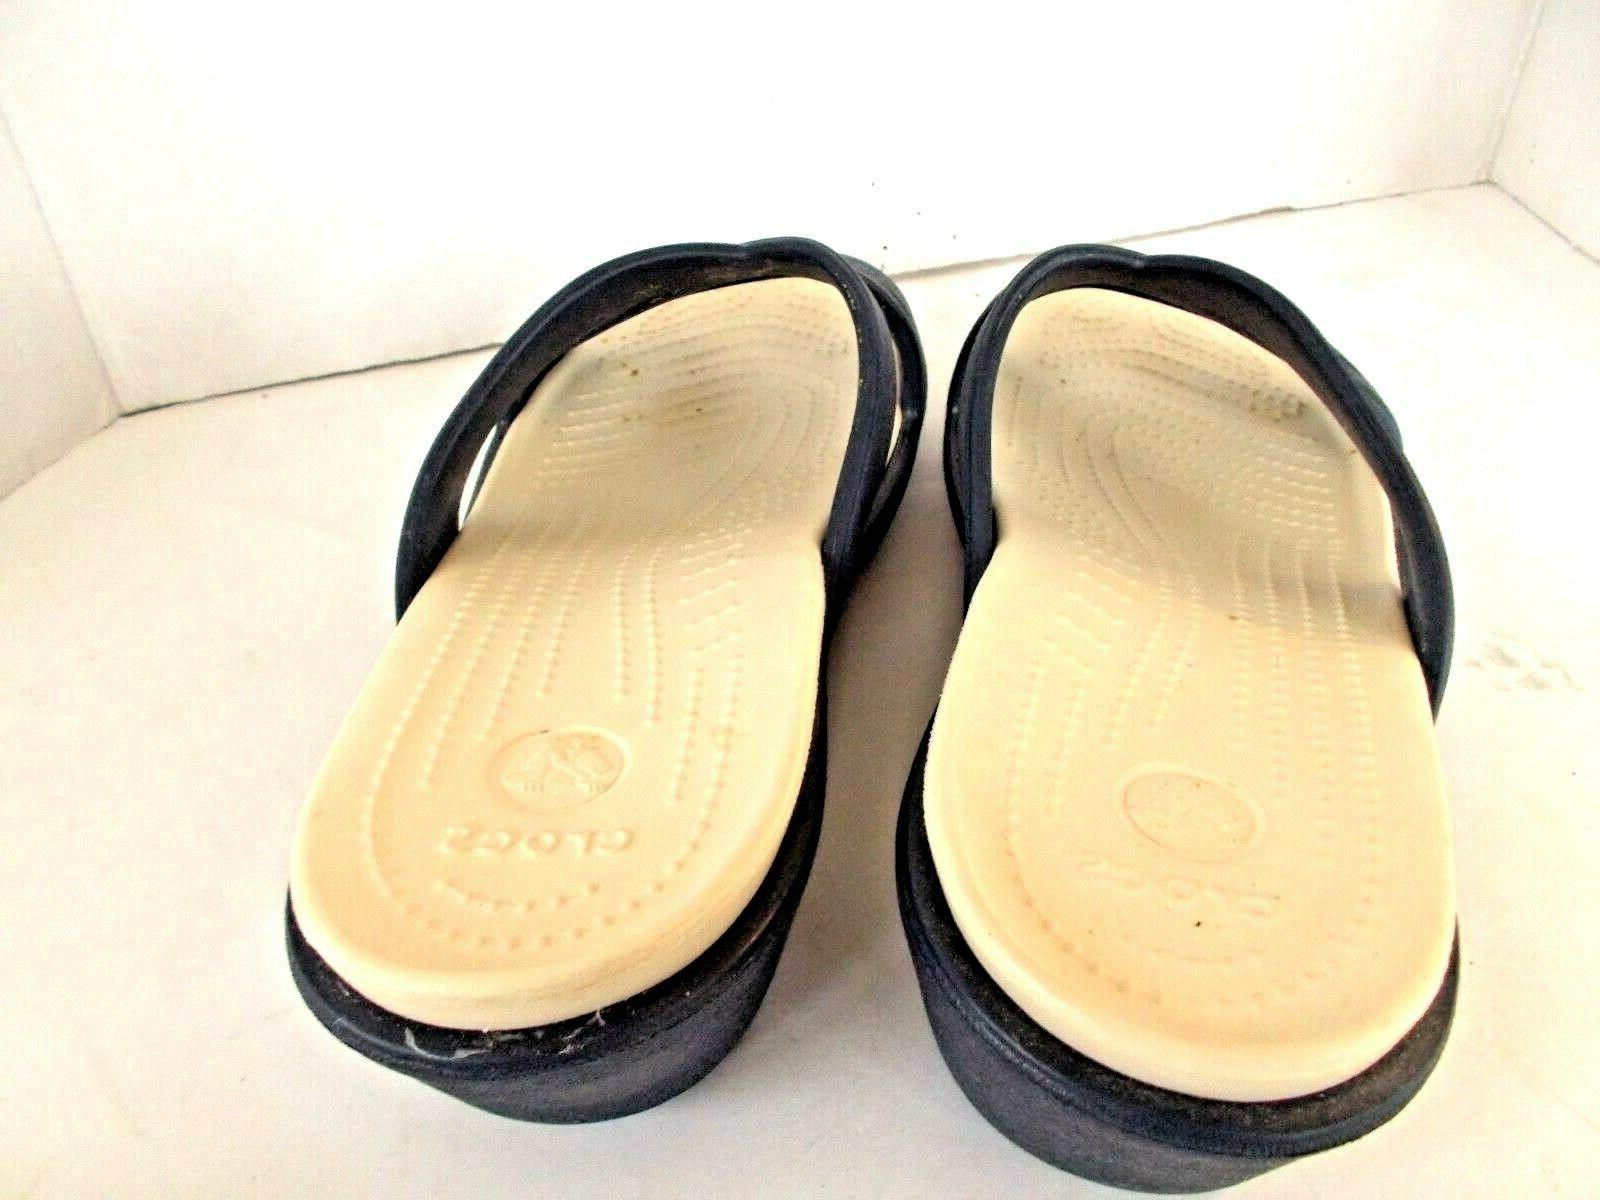 Crocs Patrica II Two Toned Navy/Oyster Wedge Sandals, Size 11